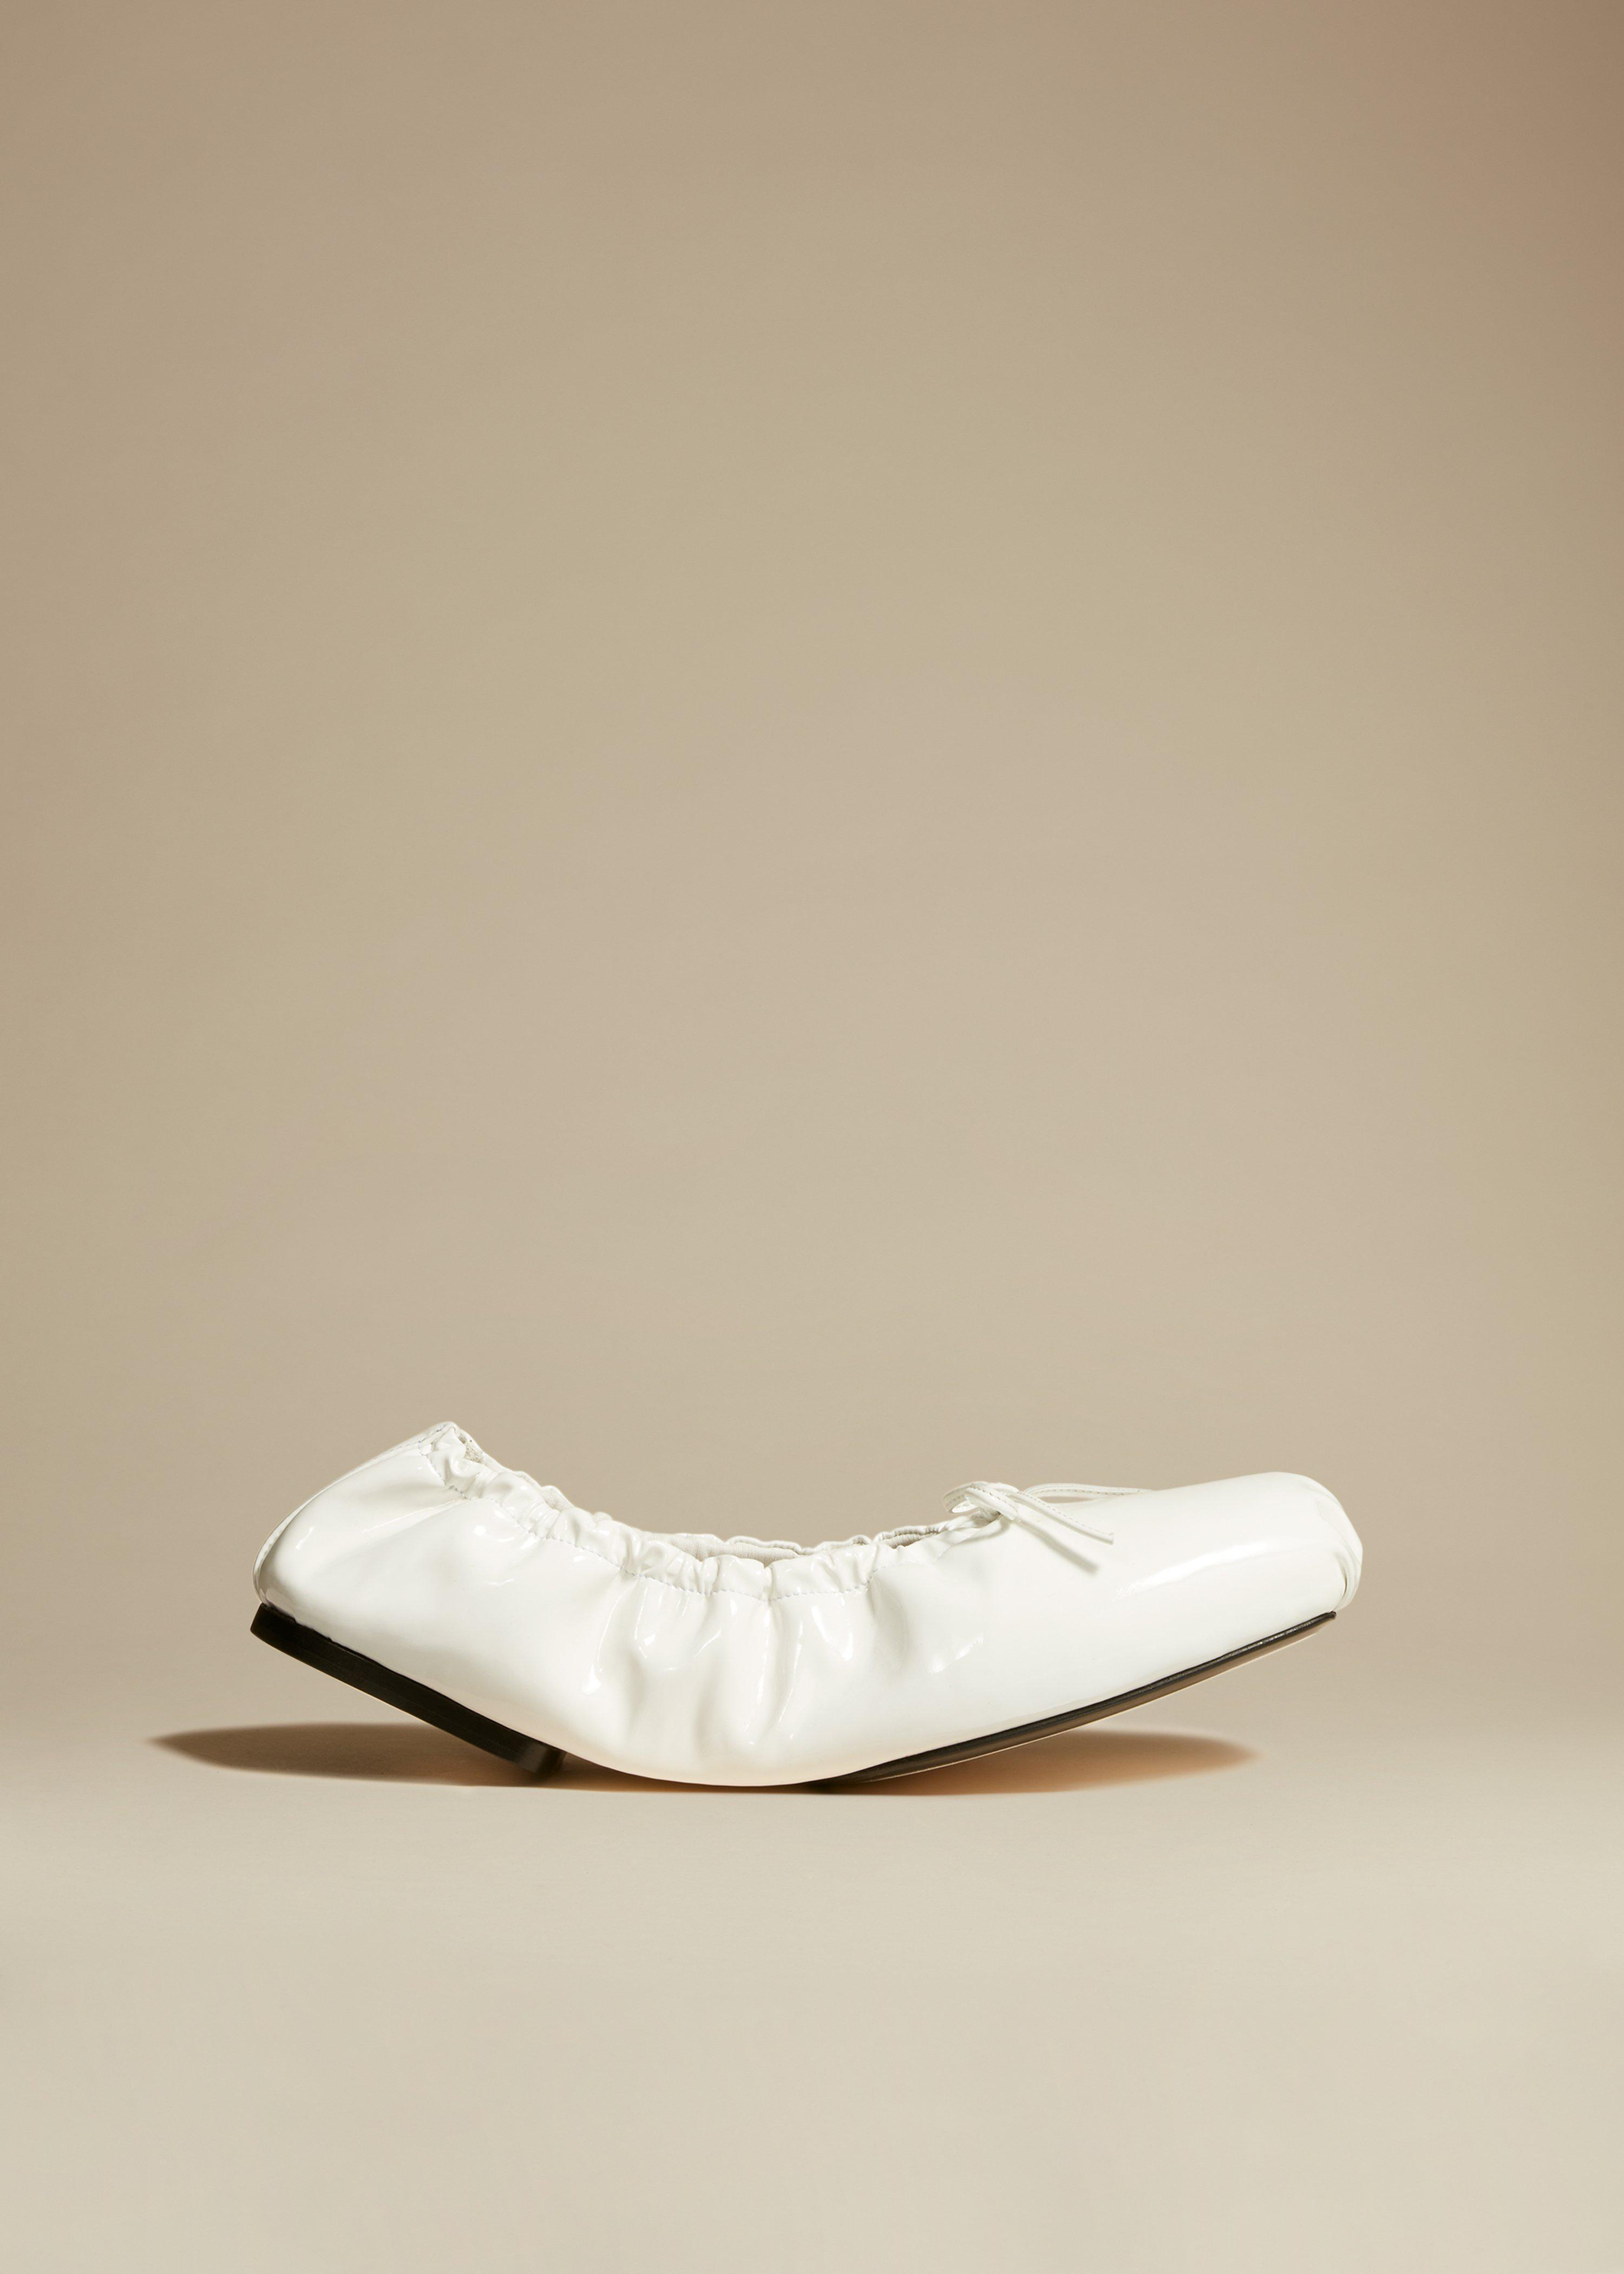 The Ashland Ballet Flat in White Patent Leather